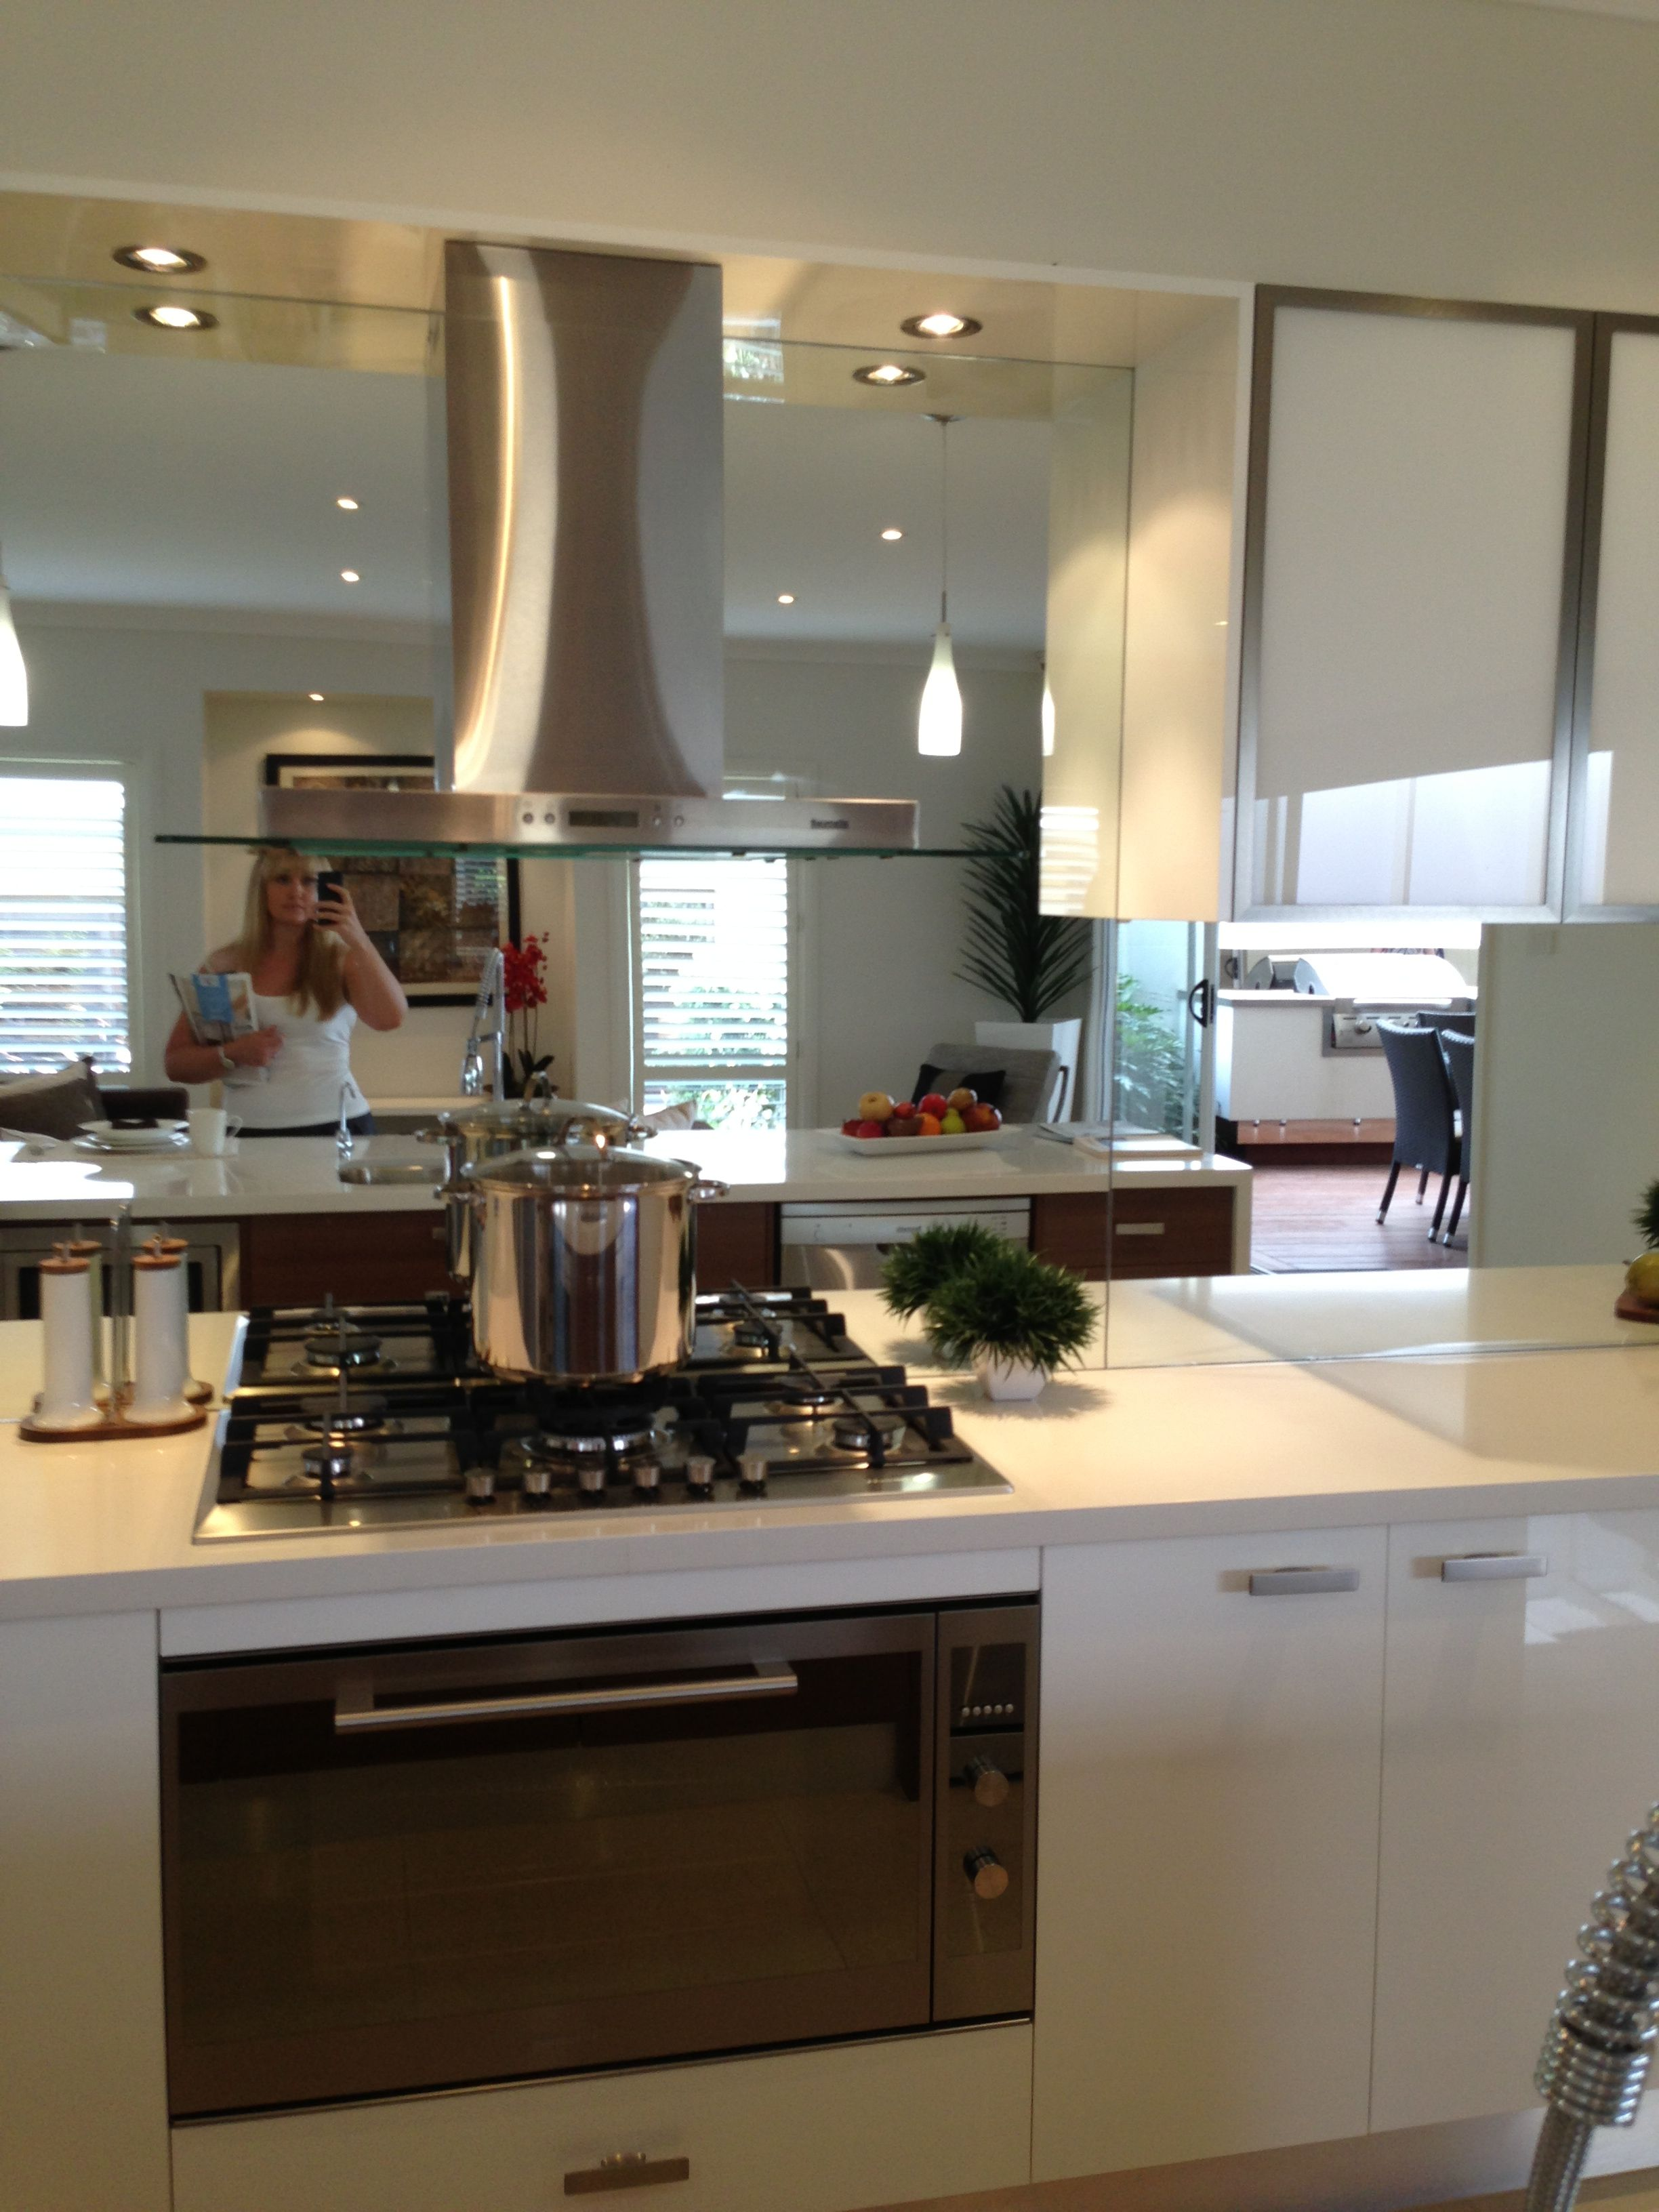 Mirrored Splashback Hob Layout Rangehood And Cabinets Without